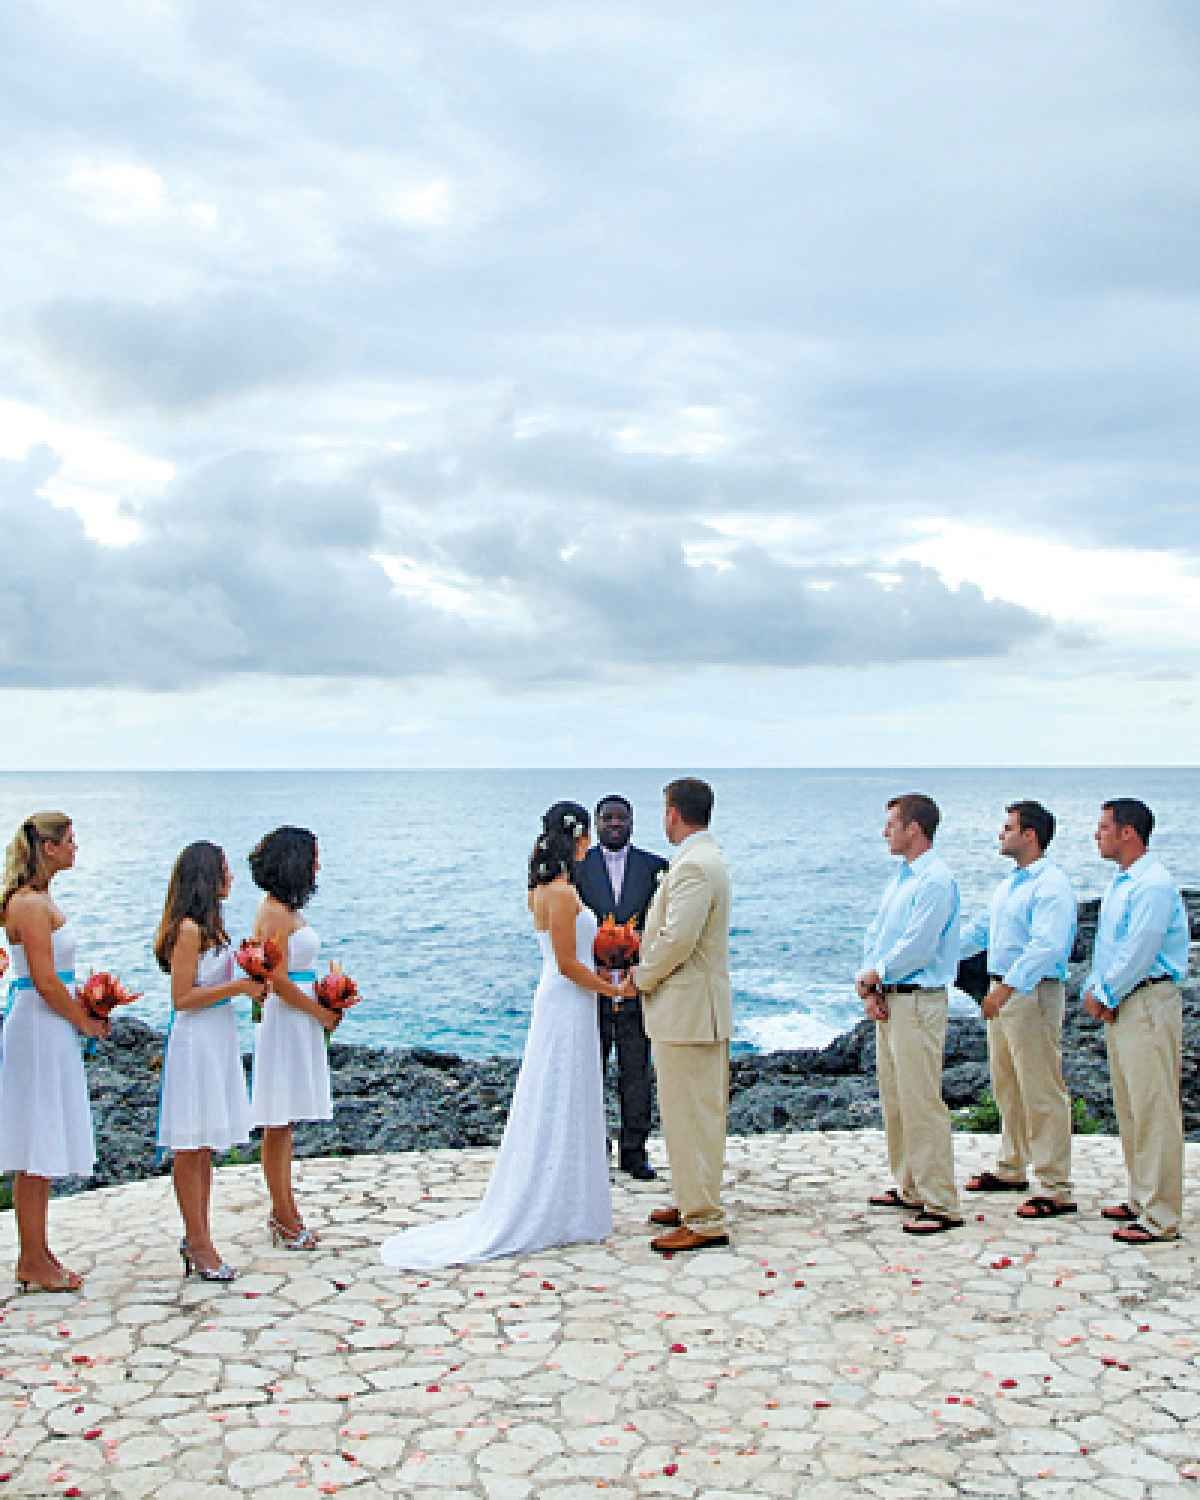 Caribbean Wedding Flowers: Couples Swept Away, Jamaica 12 Best Caribbean Beaches For